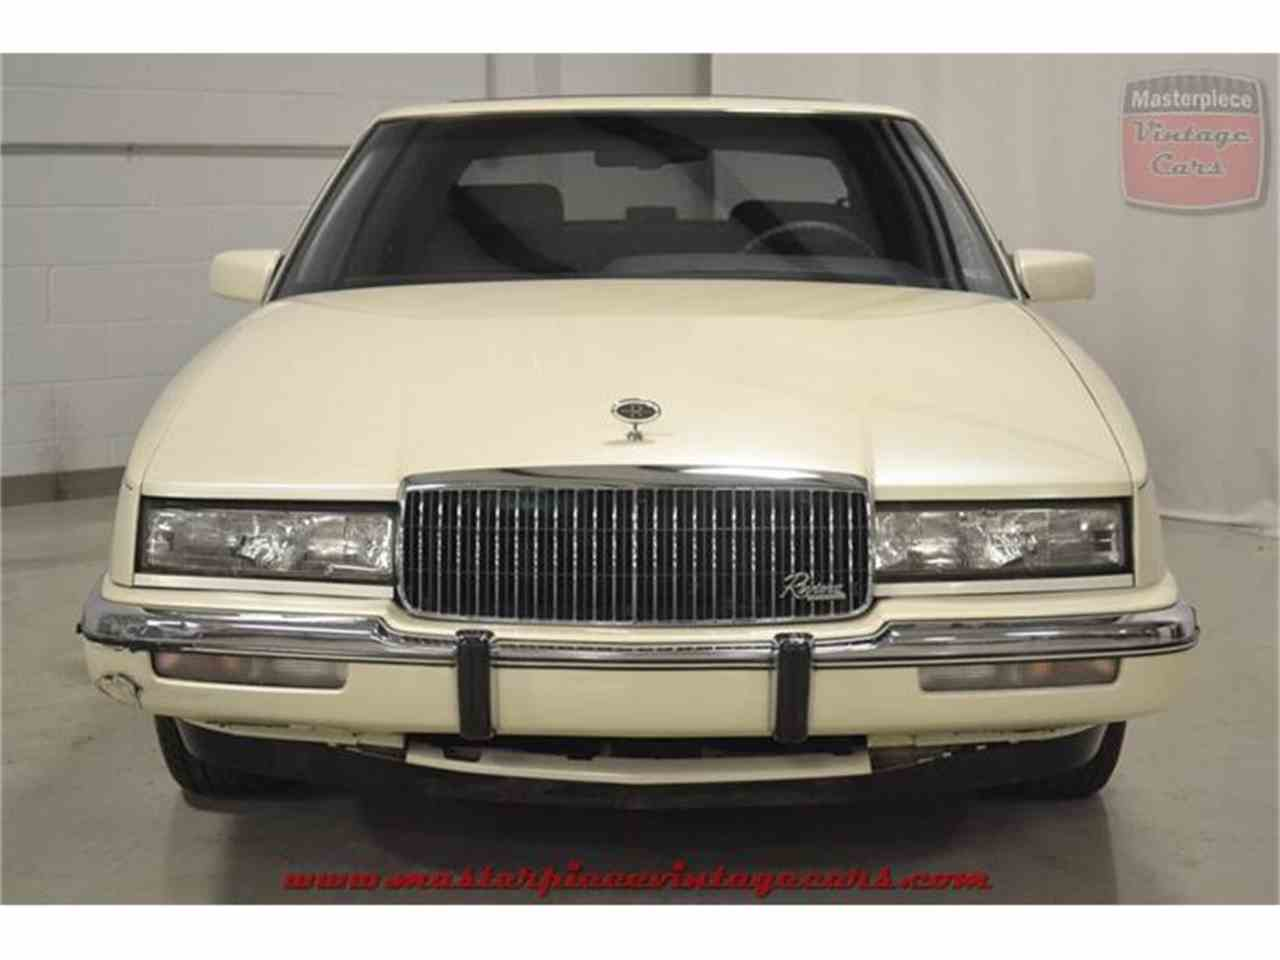 Large Picture of '90 Riviera Offered by Masterpiece Vintage Cars - IRZC